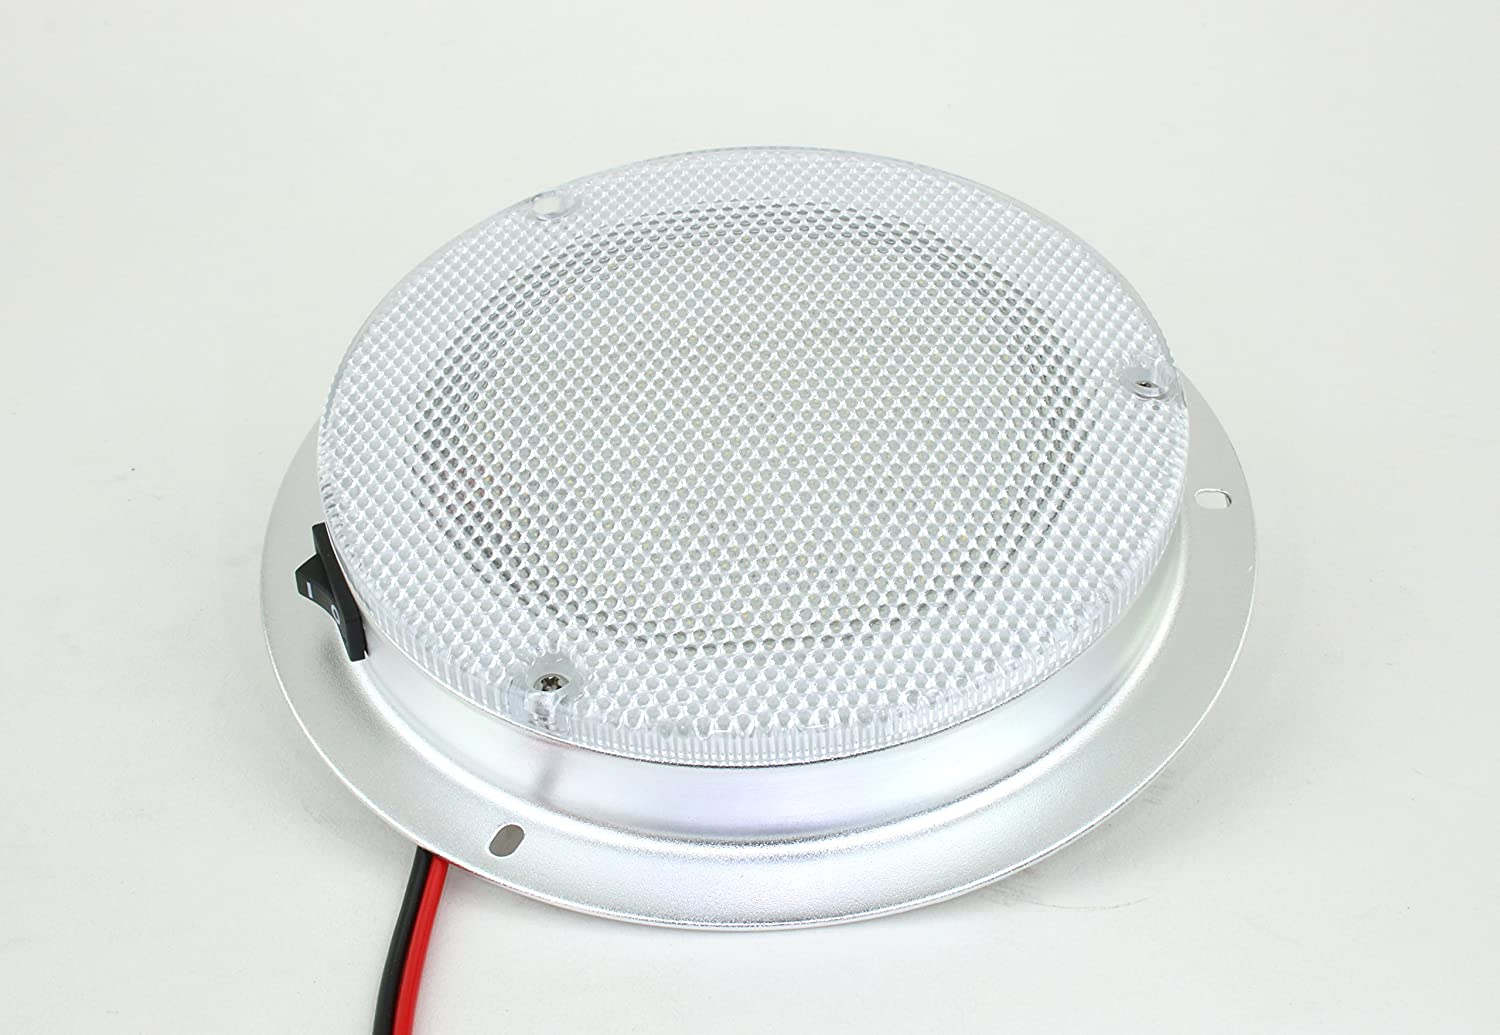 """LED Dome Light - High Power 6"""" LED Downlight - 12VDC - Waterproof - 180 Lumen -Fixed Mount with Rocker Switch- for Home, Auto, Truck, RV, Boat and Aircraft"""